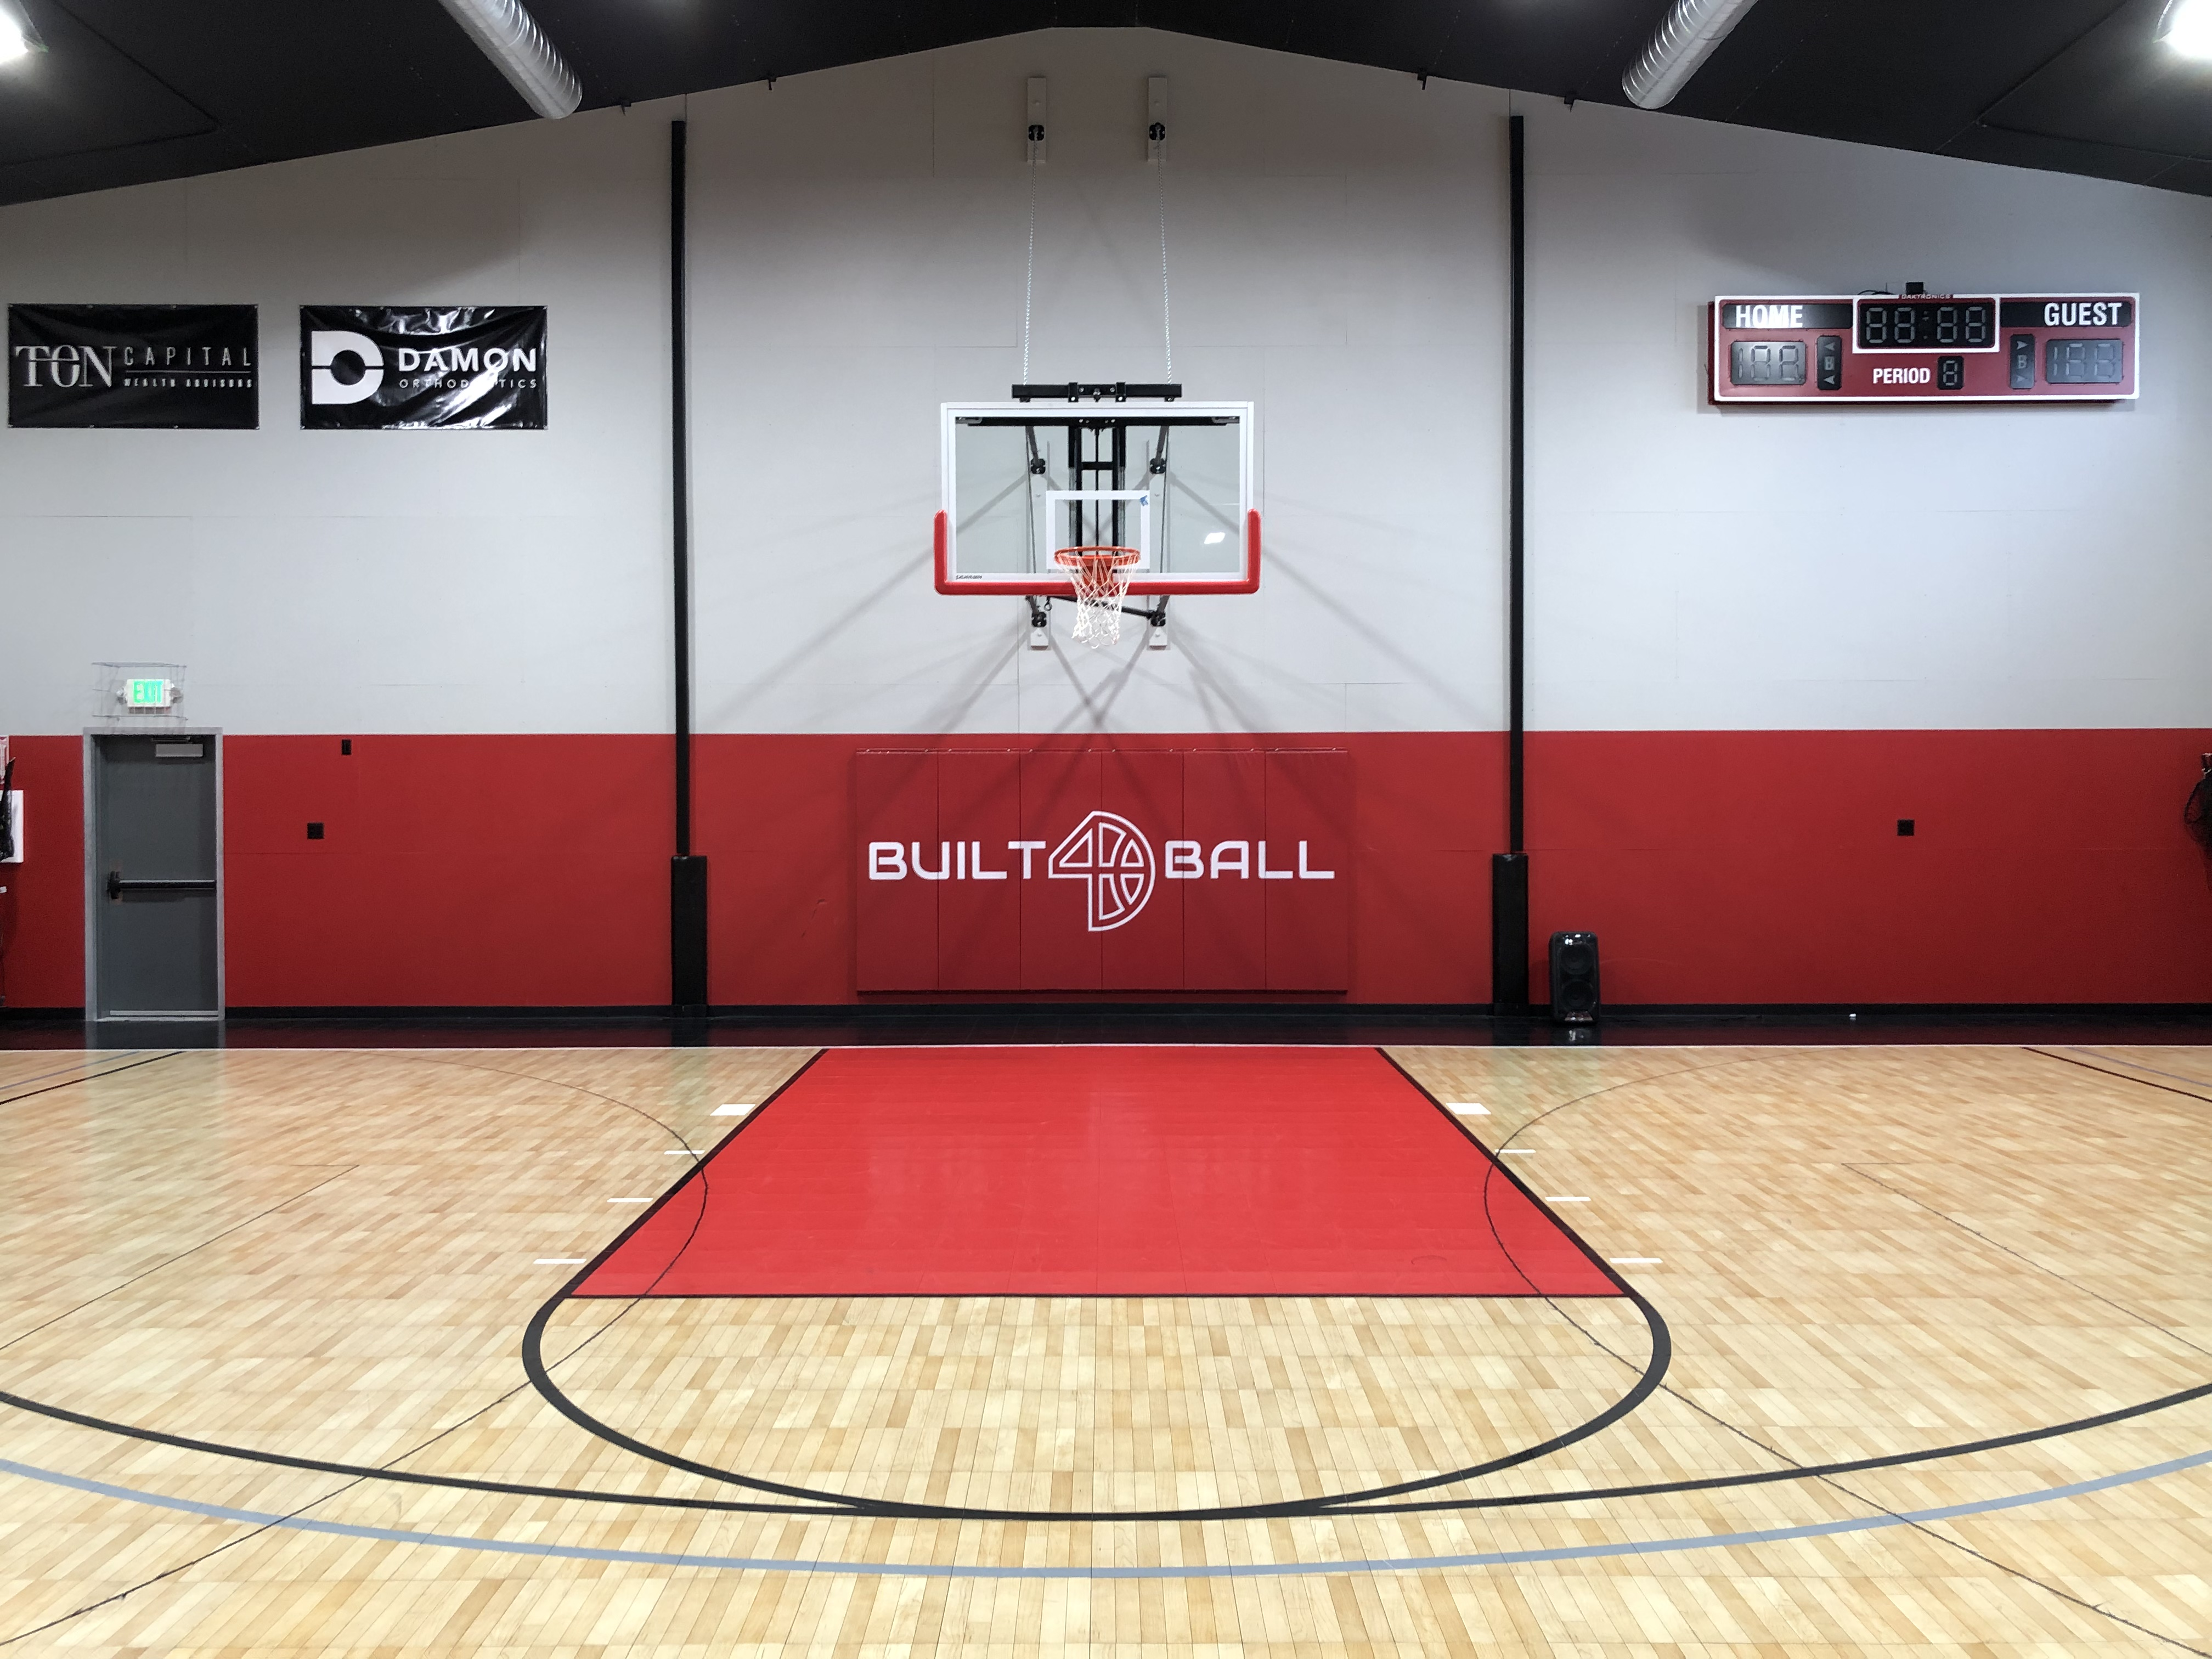 Built 4 ball wall safety pads